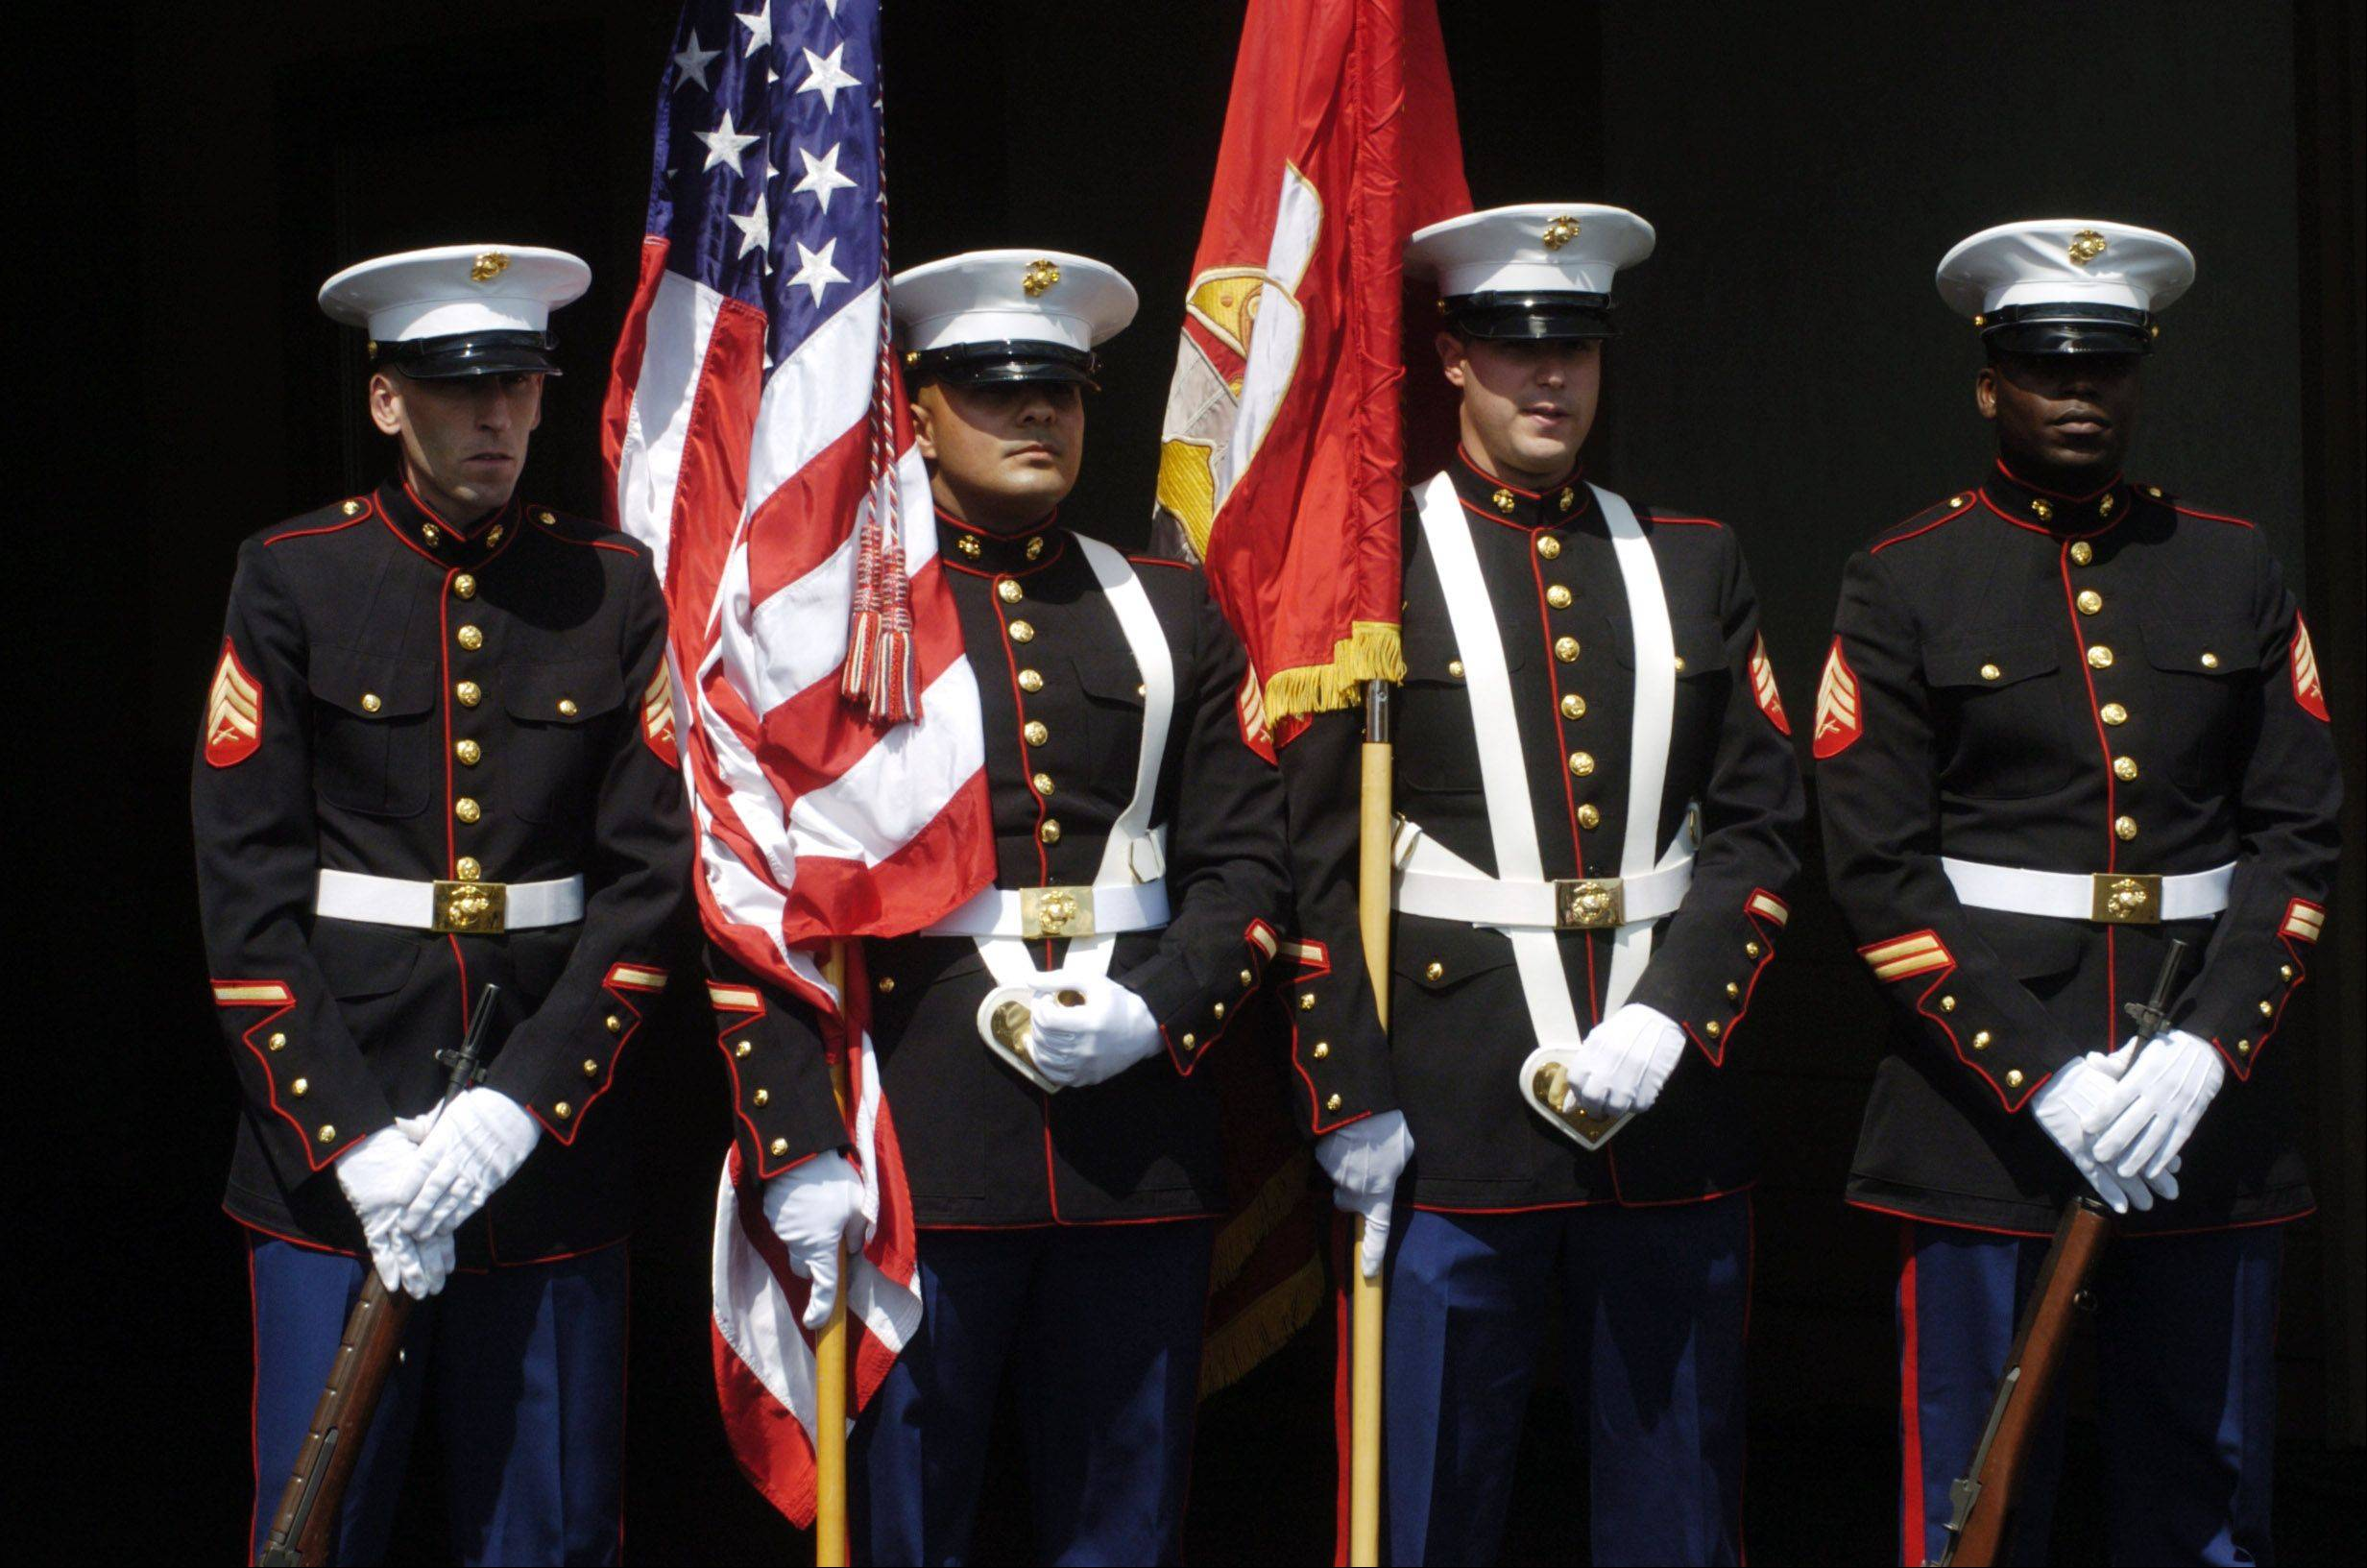 JOE LEWNARD/jlewnard@dailyherald.comThe Marine Color Guard is ready to present the colors prior to the singing of the National Anthem the Arlington Million at Arlington Park Saturday.